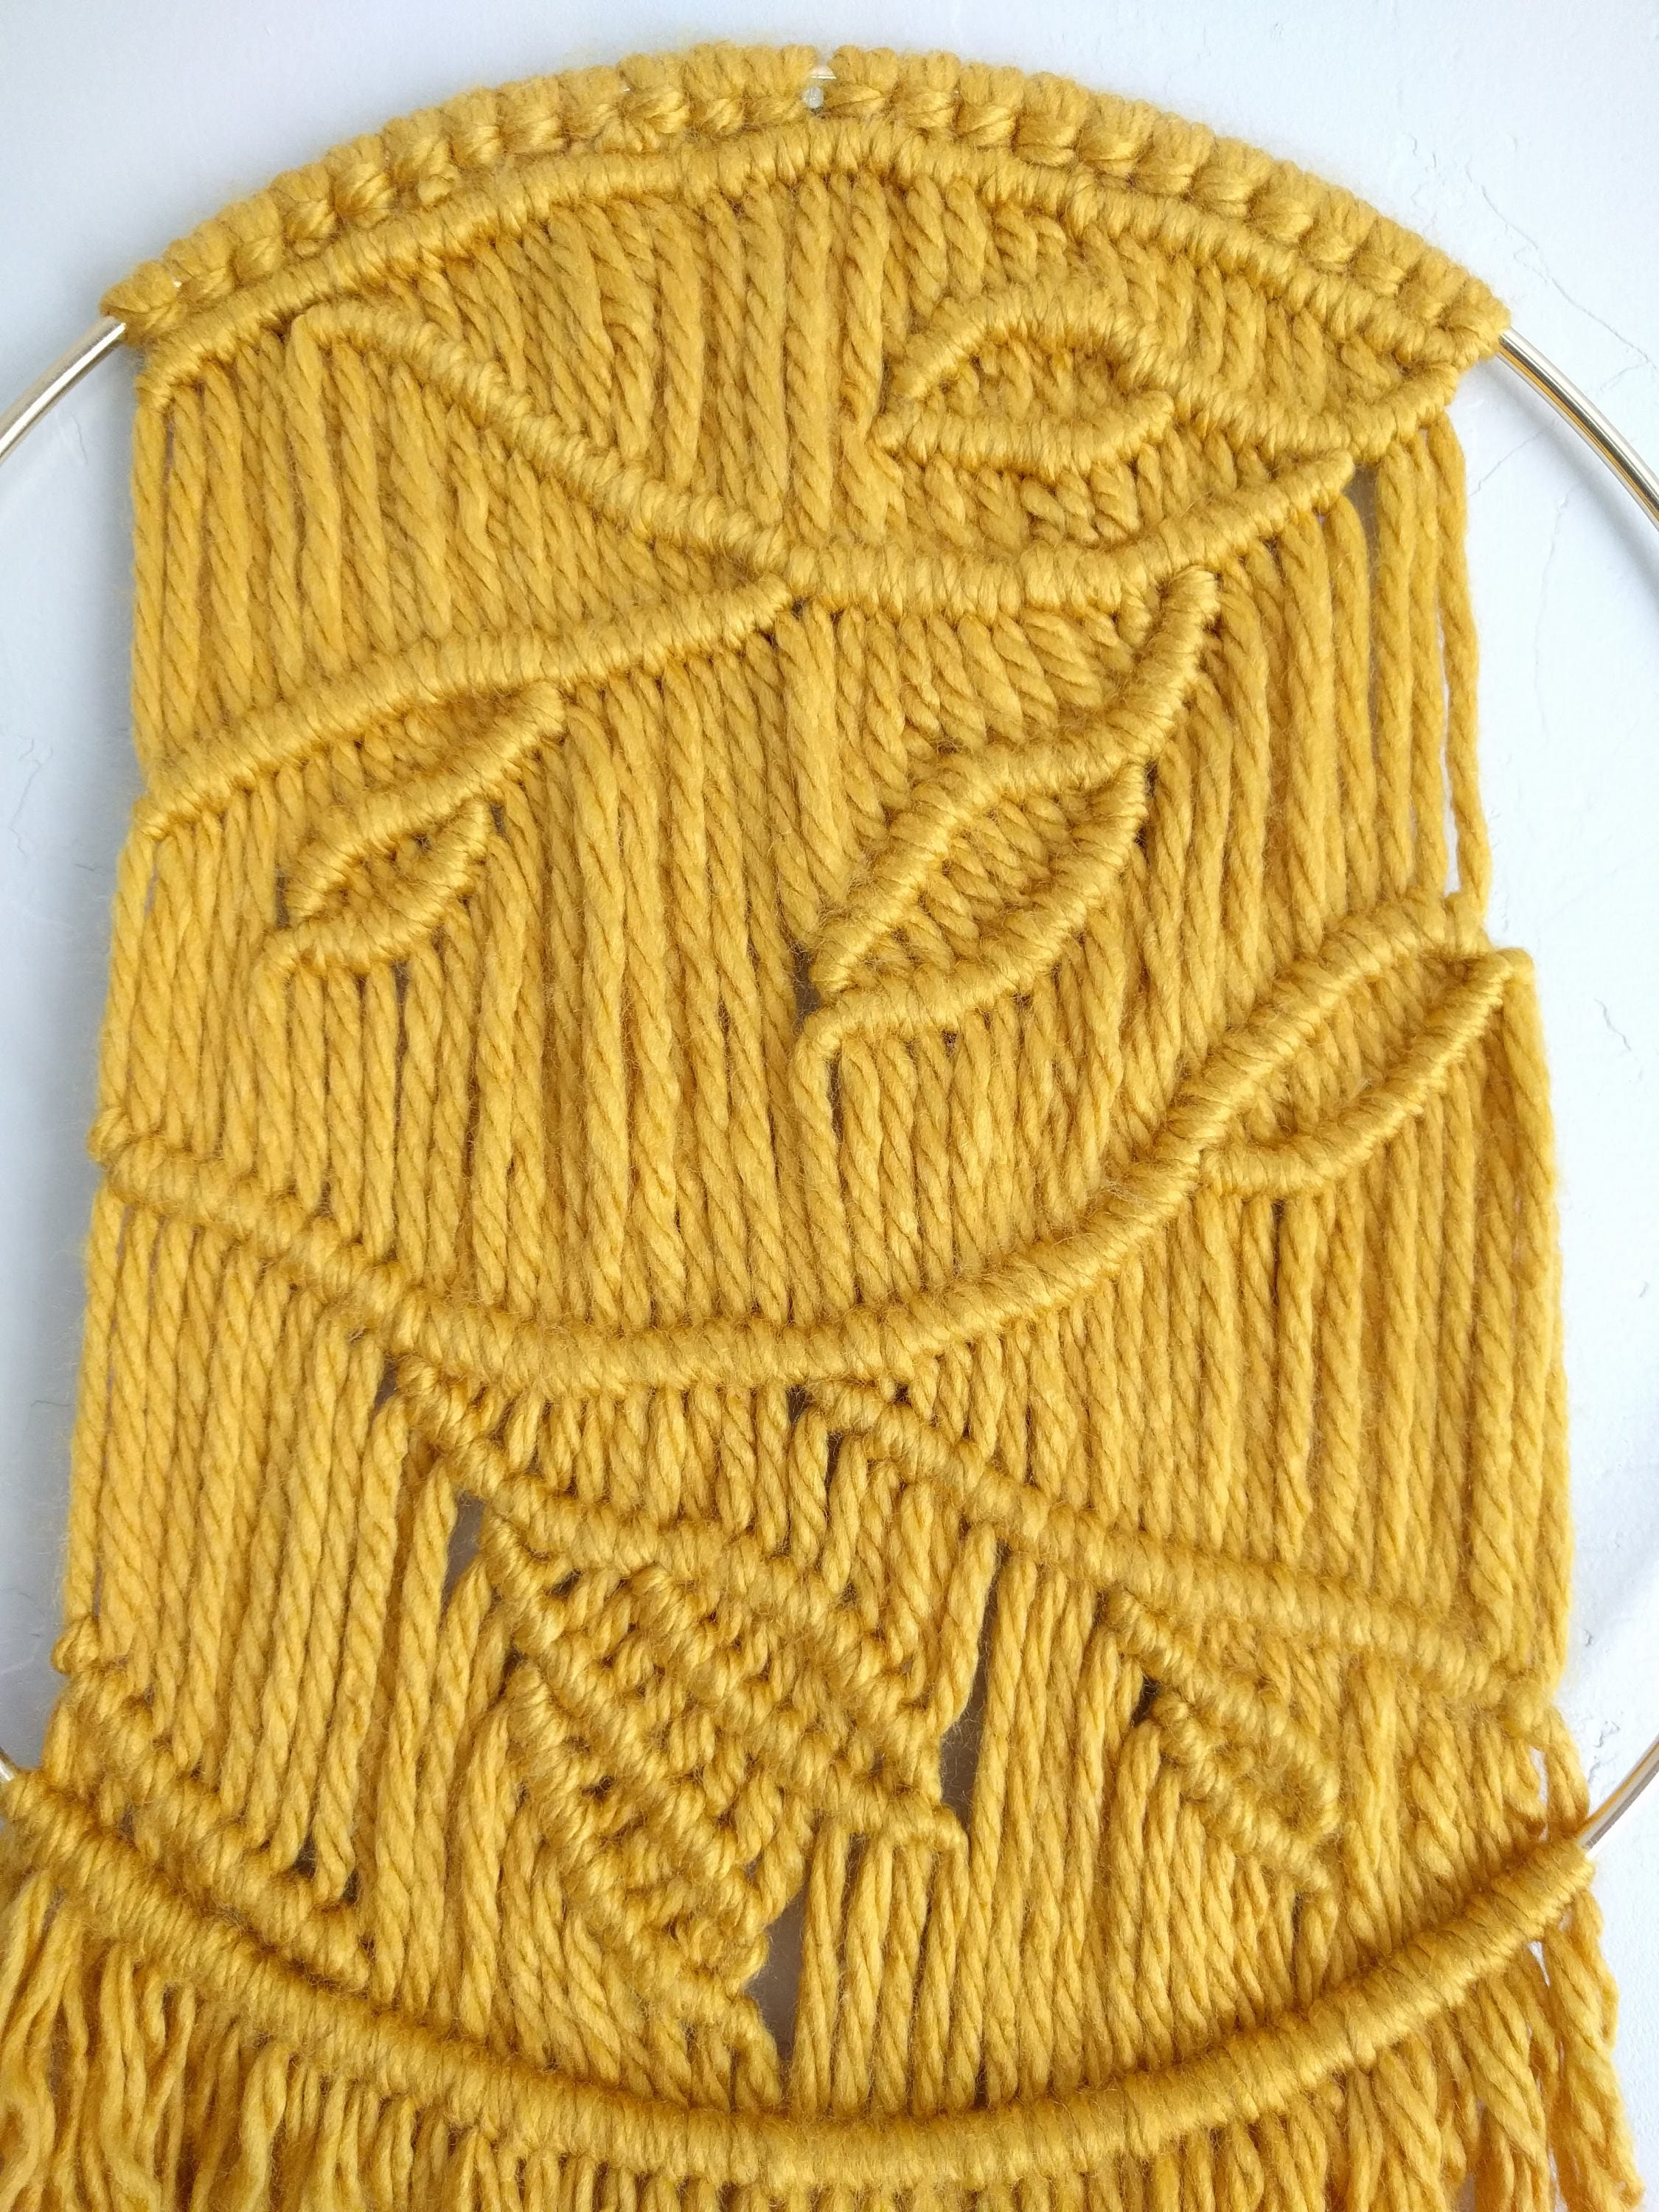 Modern Macramé Wall Hanging, Hygge, Mustard, Gold Ring, Branches ...